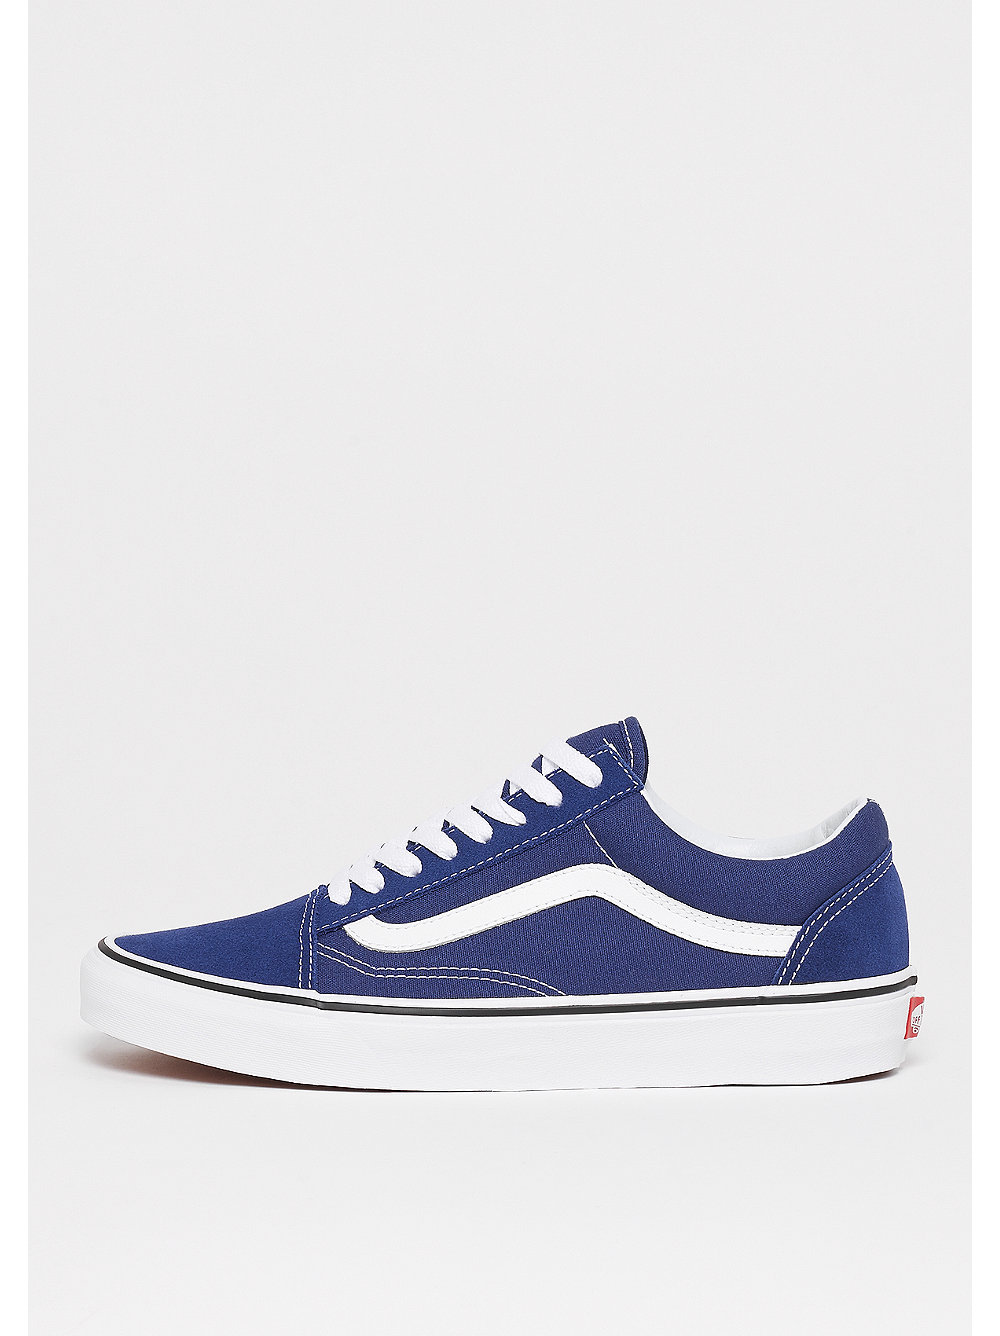 vans old skool blau 41